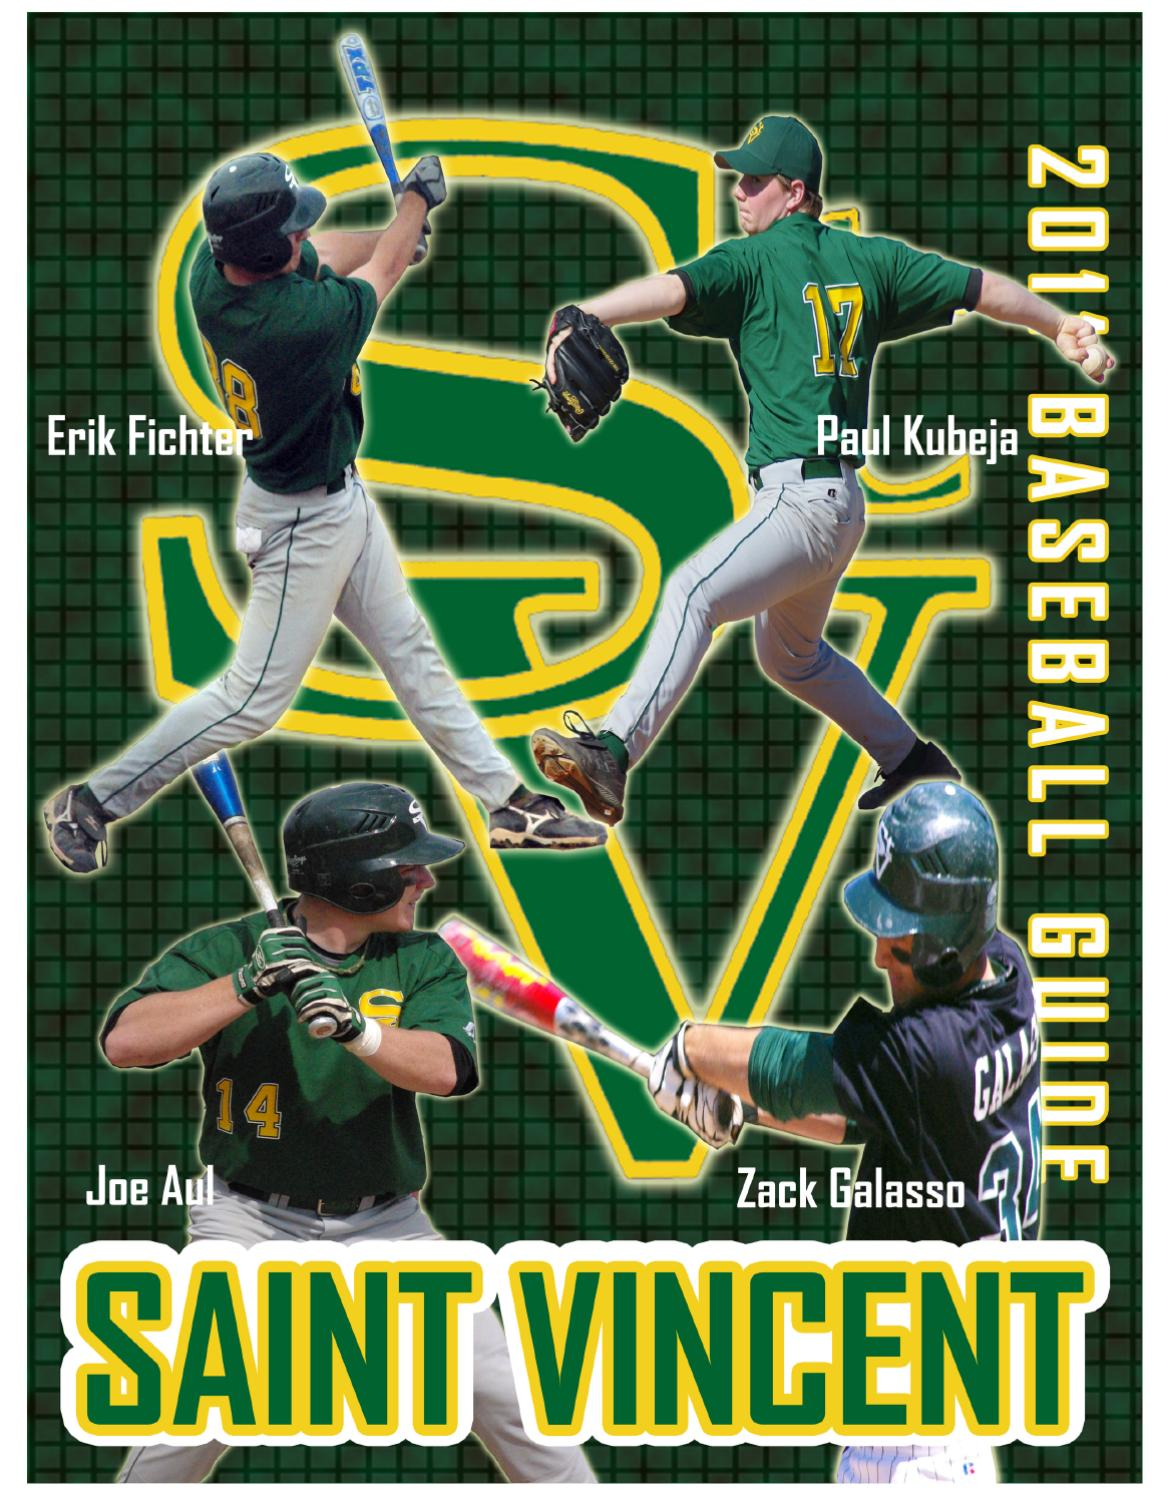 2011 Saint Vincent College Baseball Media Guide By Saint